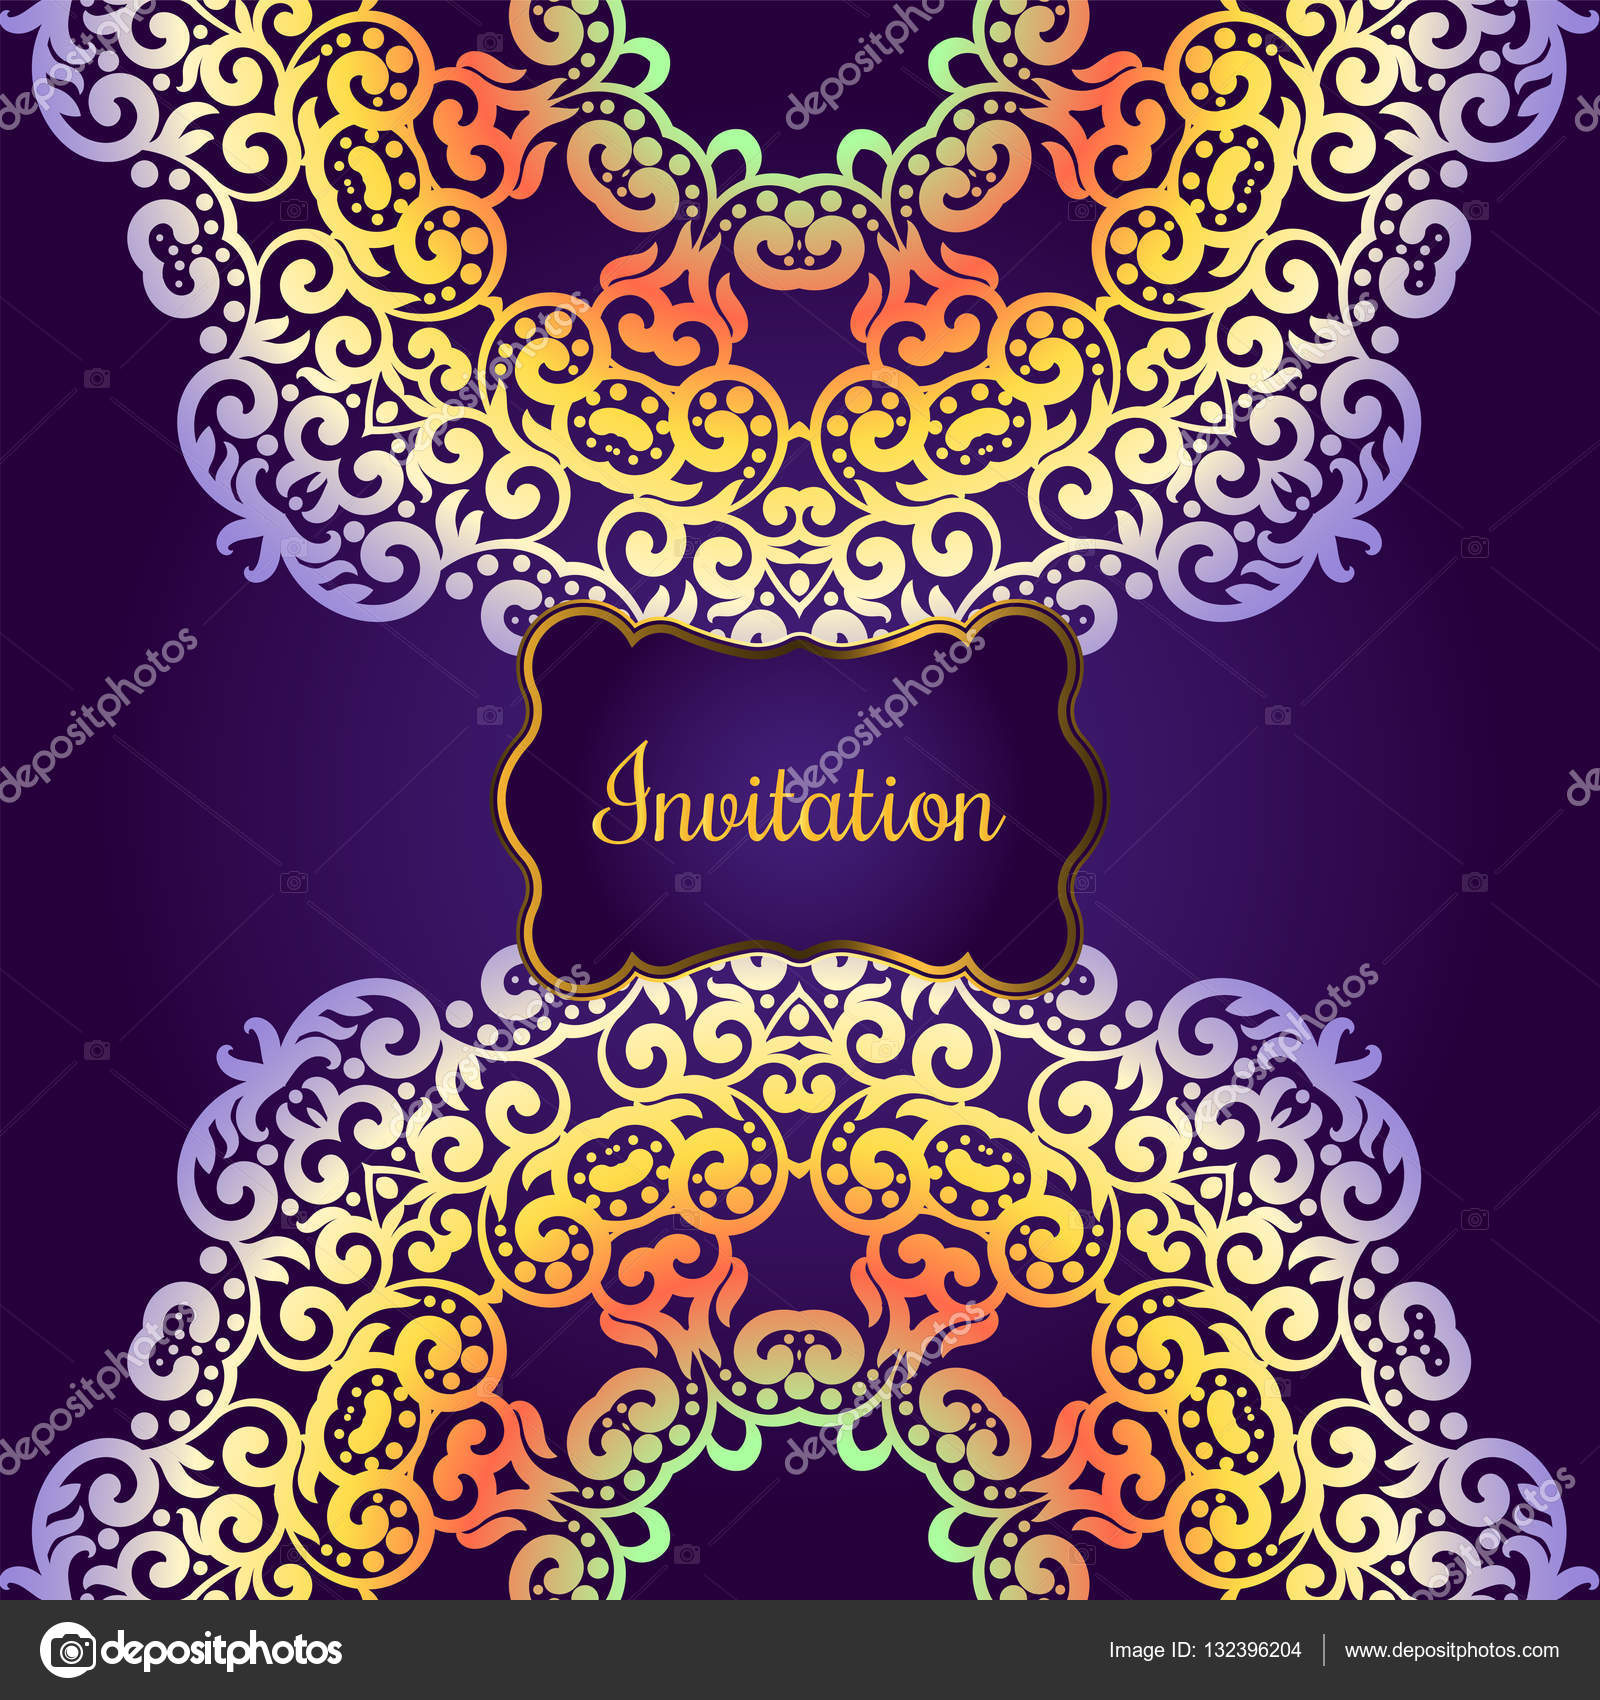 Wedding invitation delicate swirl mandala pattern vector wedding invitation delicate swirl mandala pattern vector background card or invitation vintage stopboris Image collections